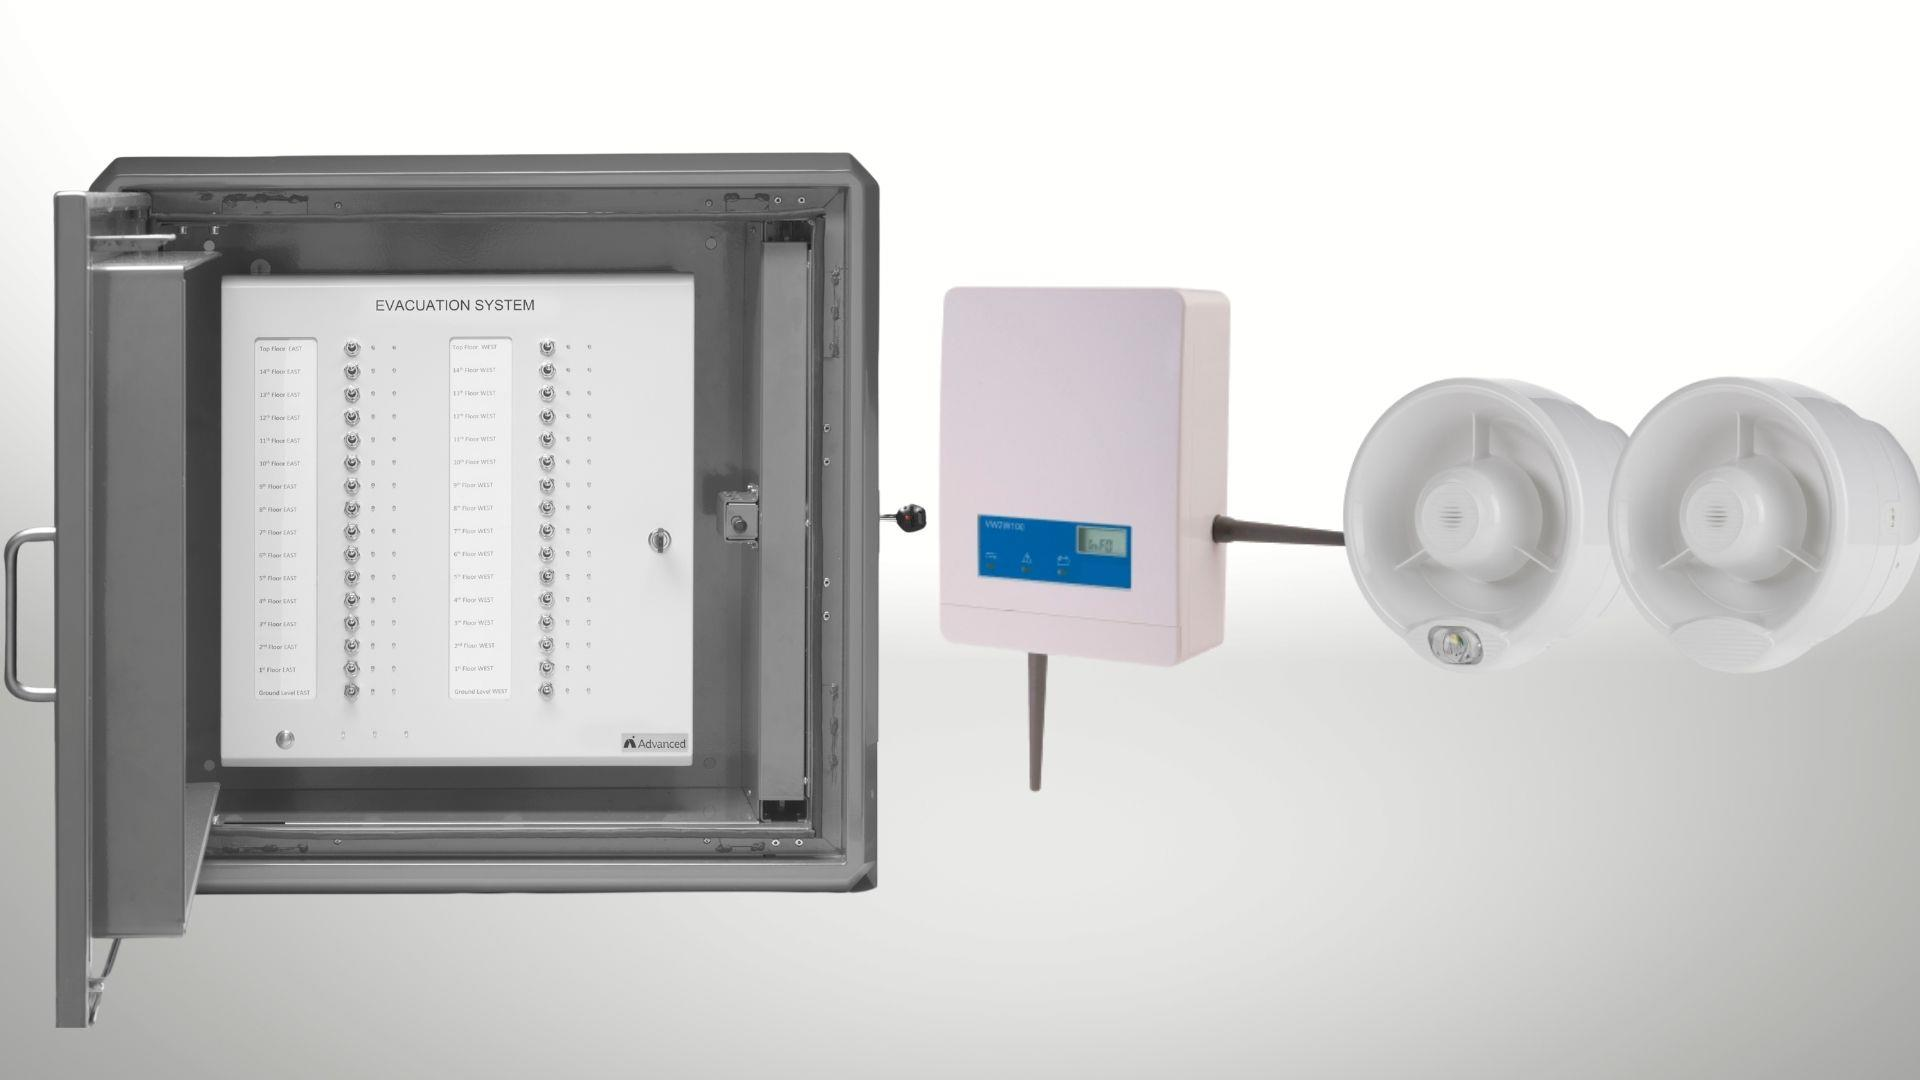 HYFIRE'S EVACWIRELESS OFFERS A RAPID AND EFFICIENT SOLUTION TO BS8629 REQUIREMENTS